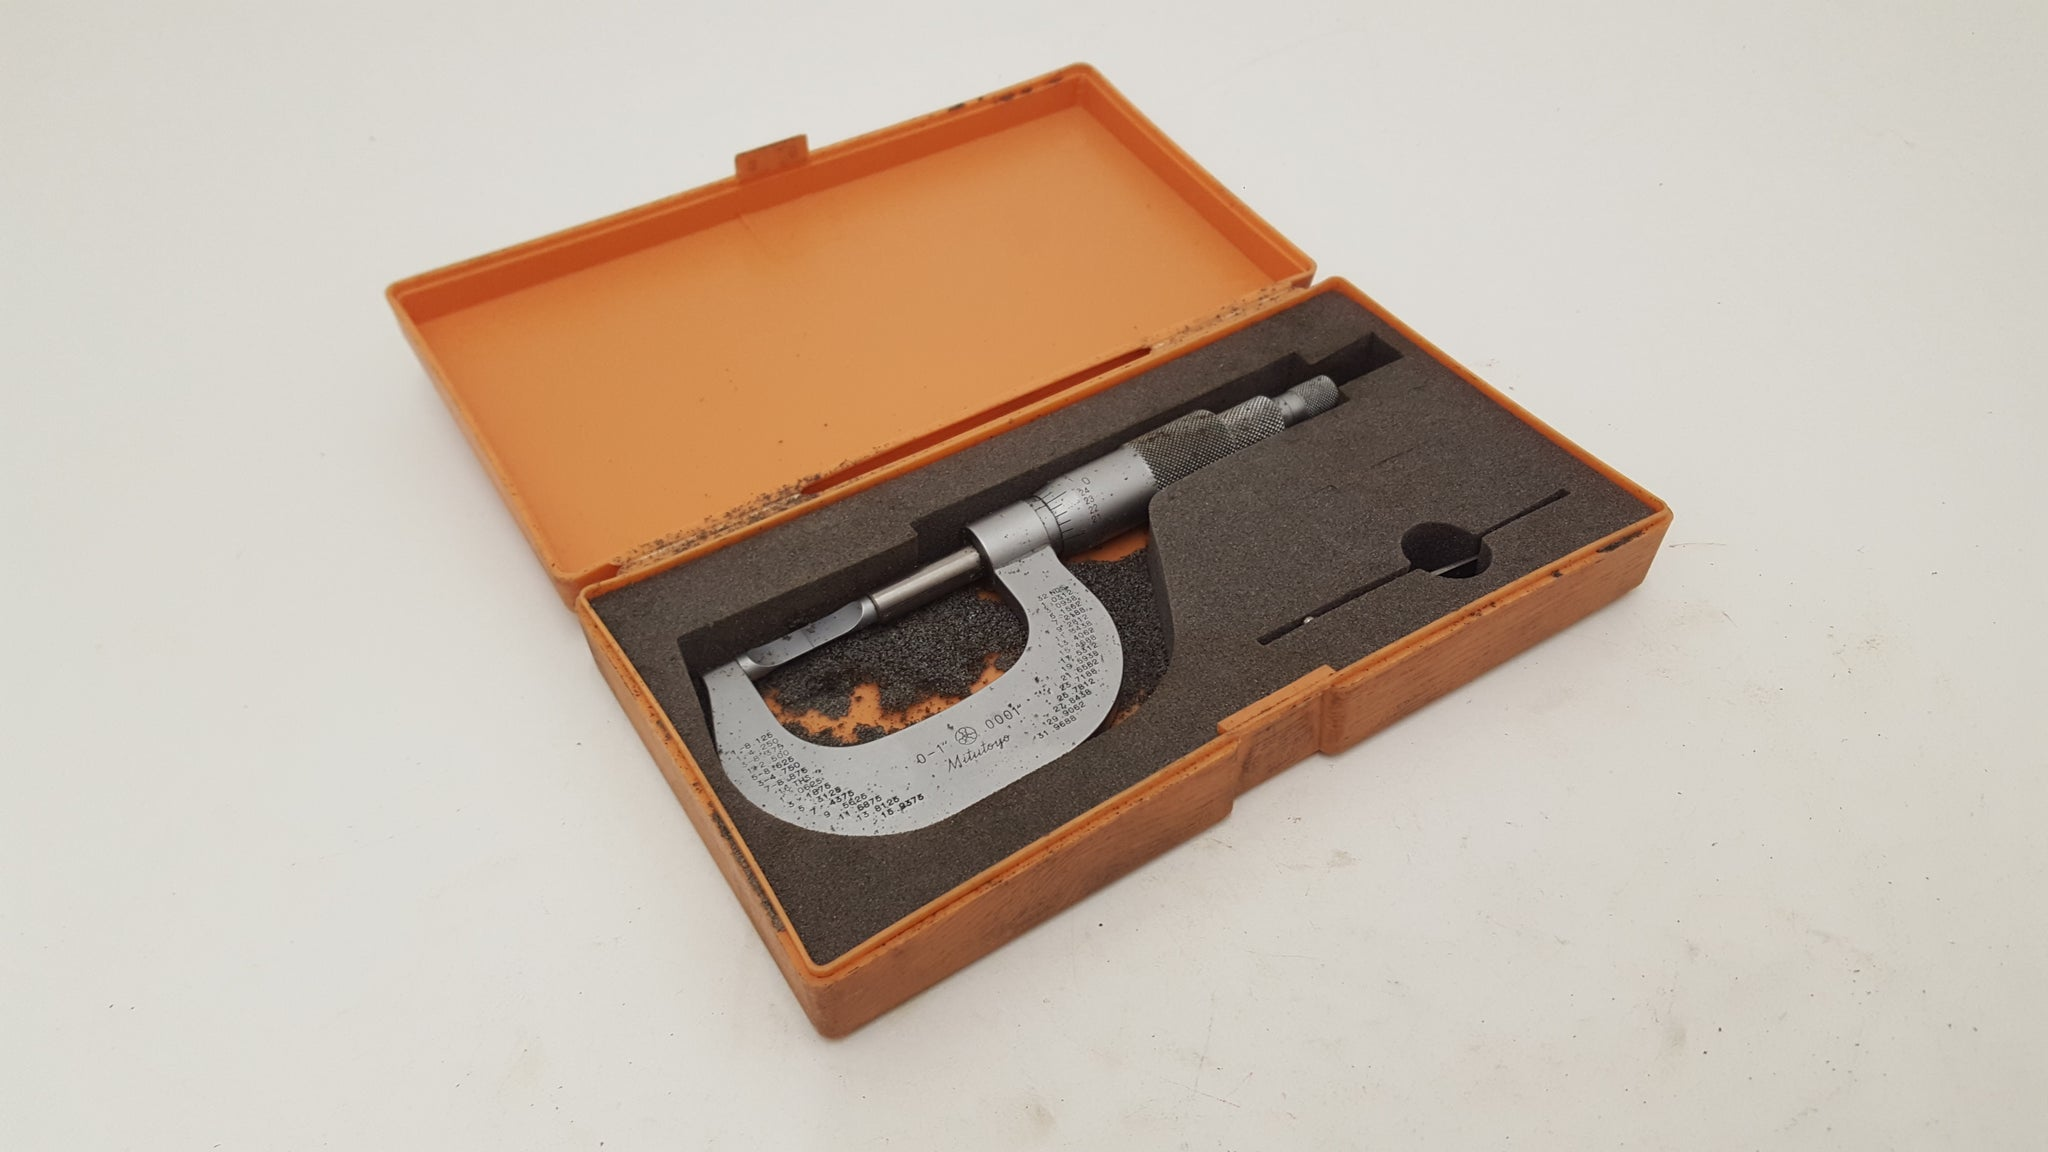 Stunning Mitutoyo 122 - 125 Micrometer Boxed w Instructions & Certificate of Acc